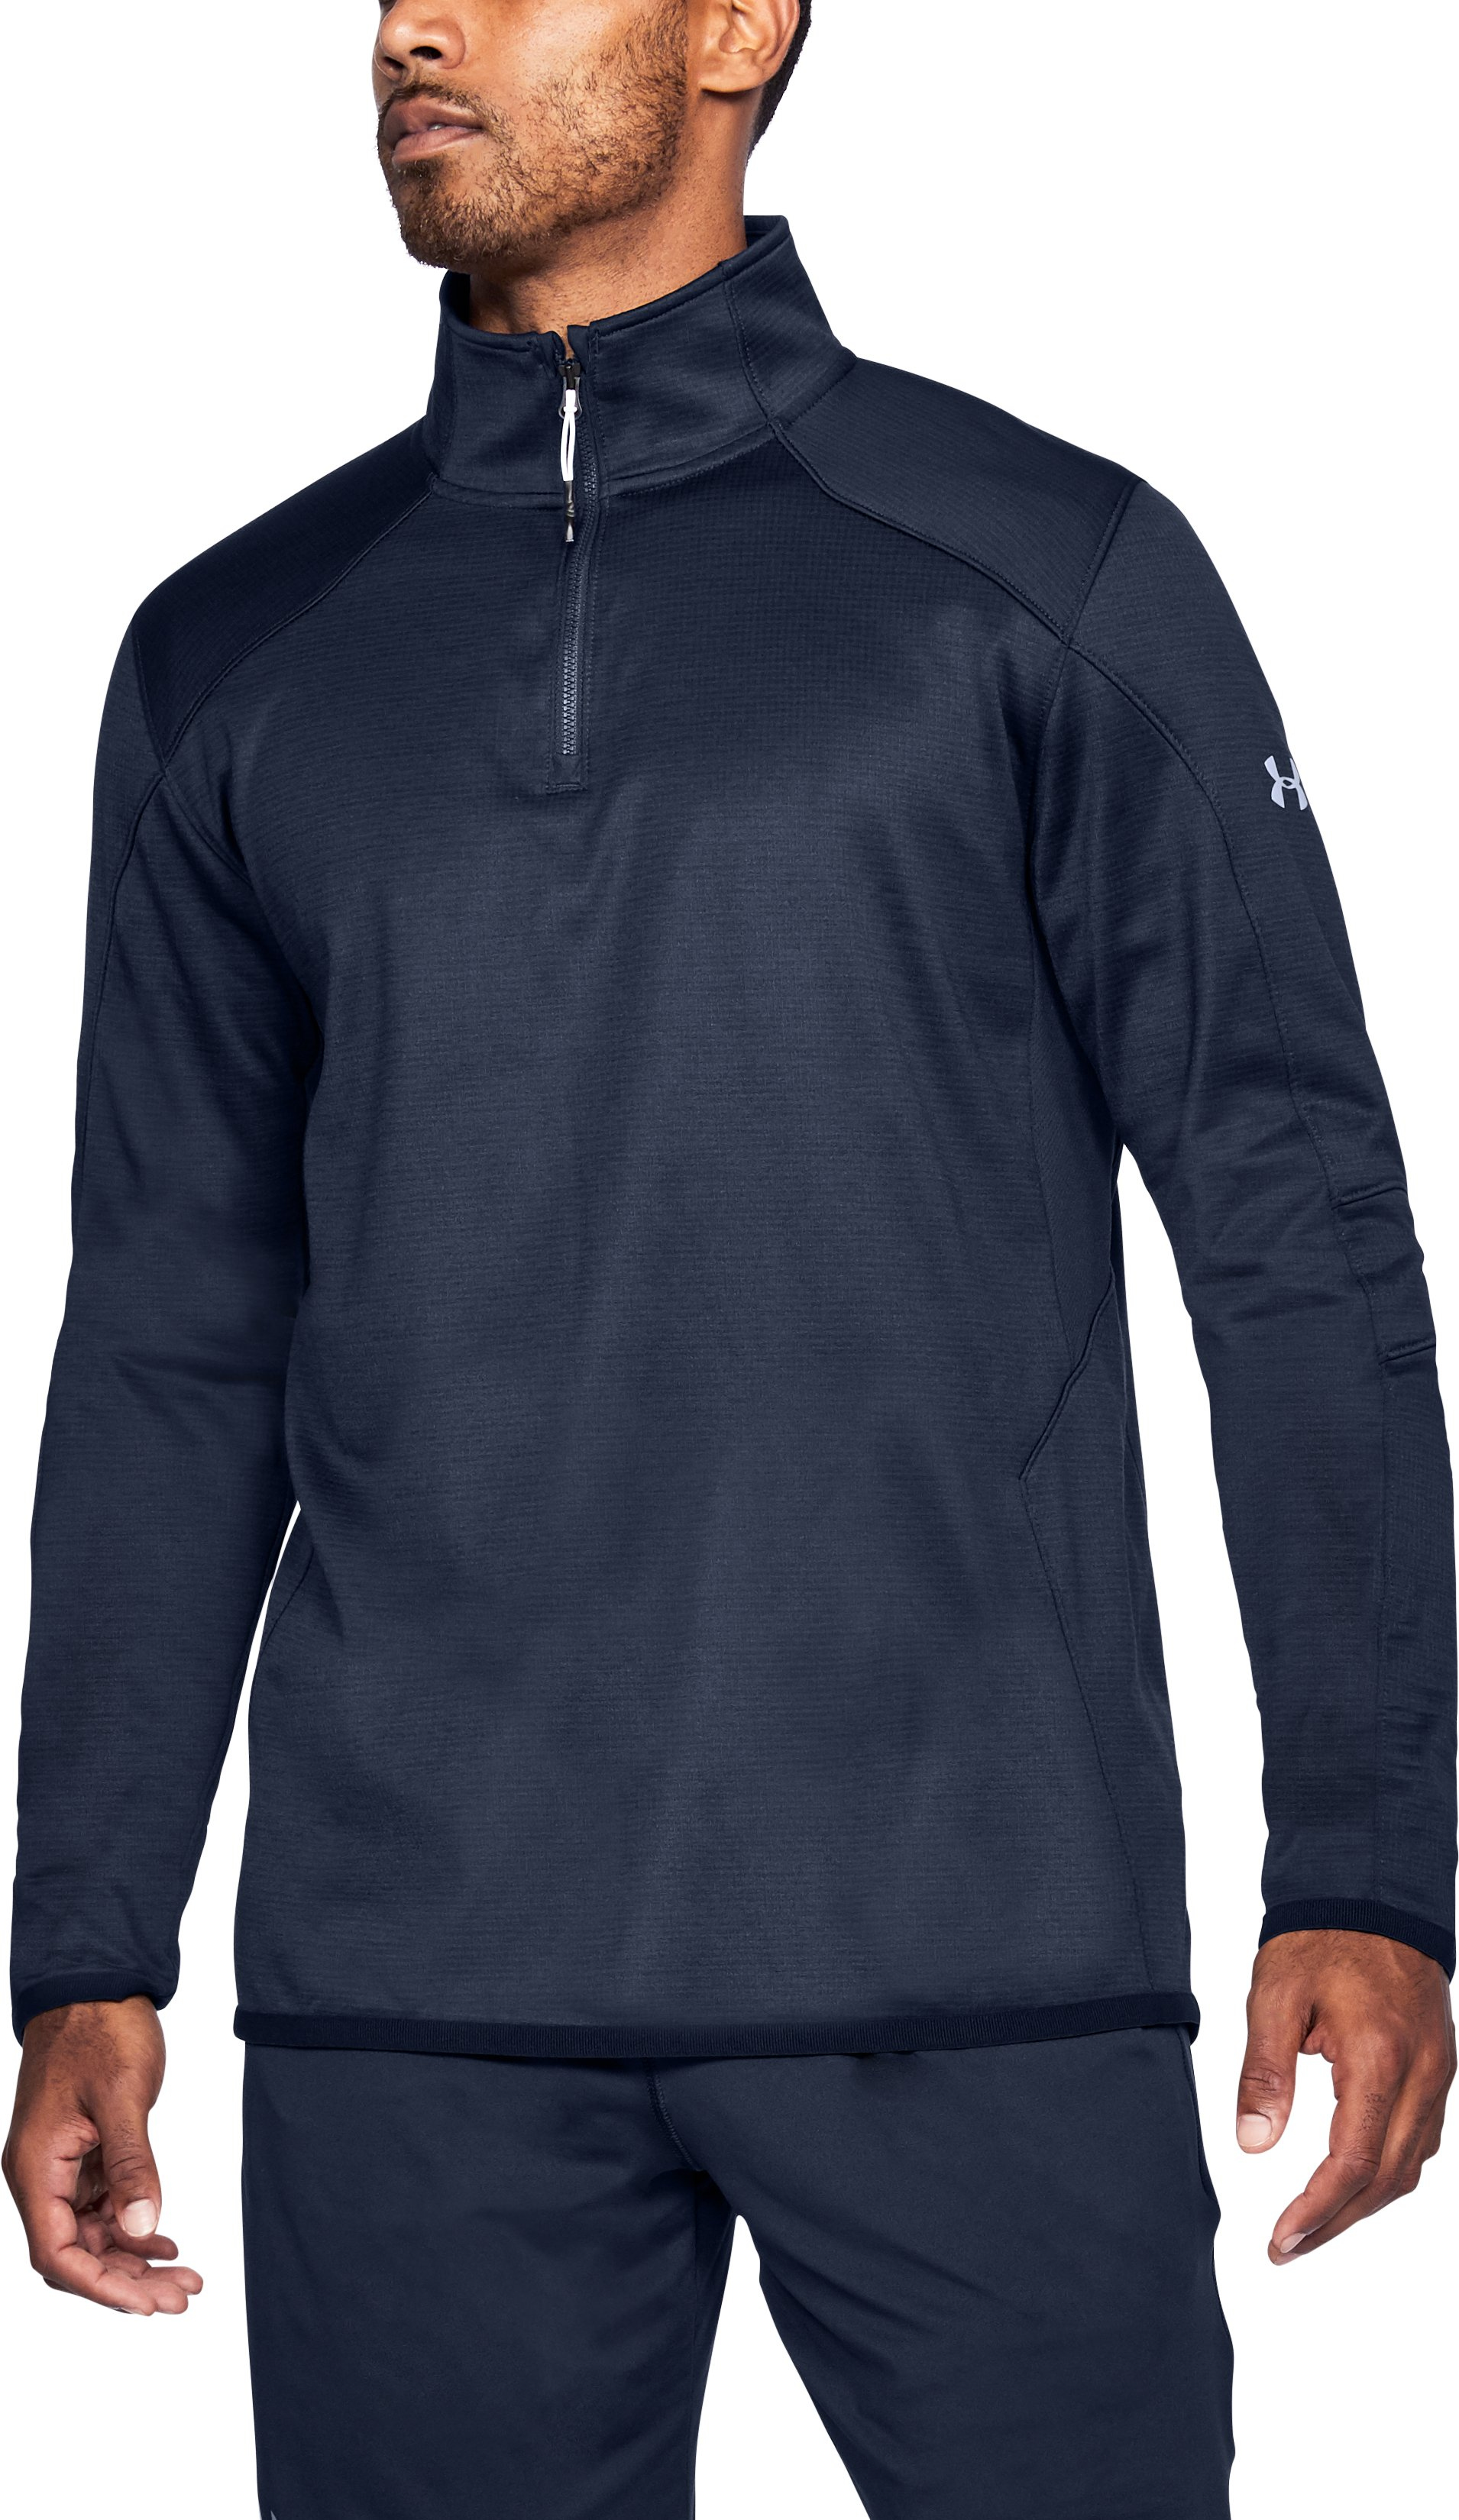 Men's ColdGear® Reactor Fleece ¼ Zip, Midnight Navy